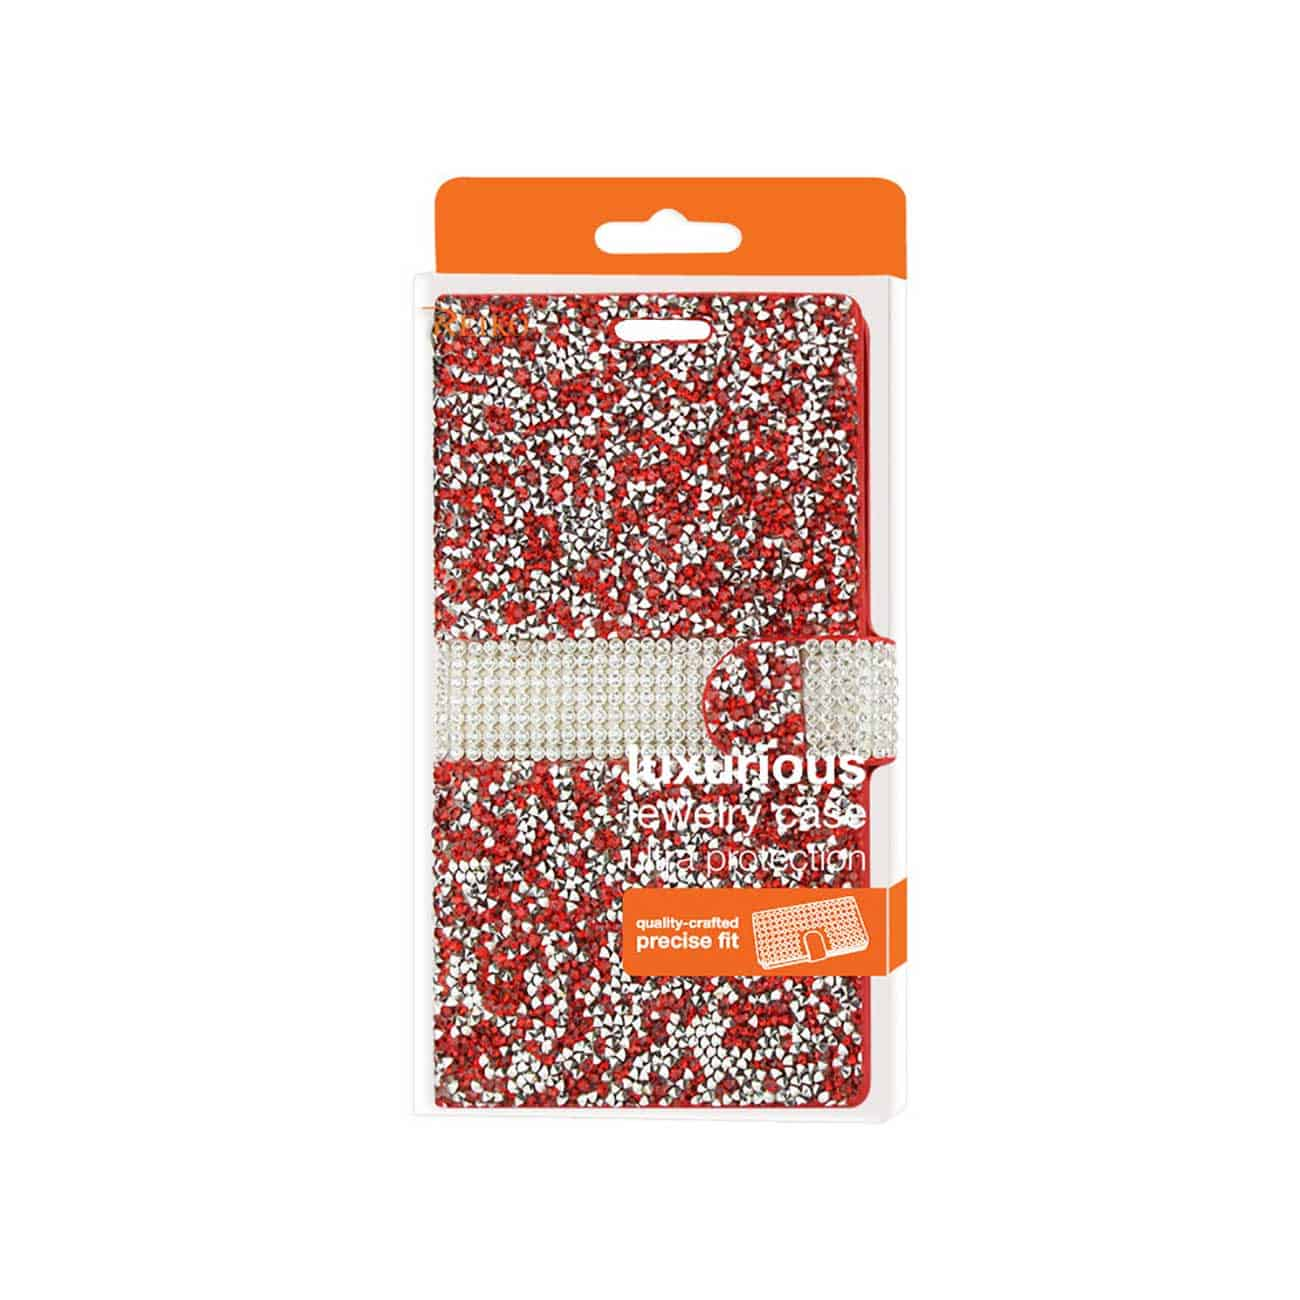 LG V10 JEWELRY RHINESTONE WALLET CASE IN RED